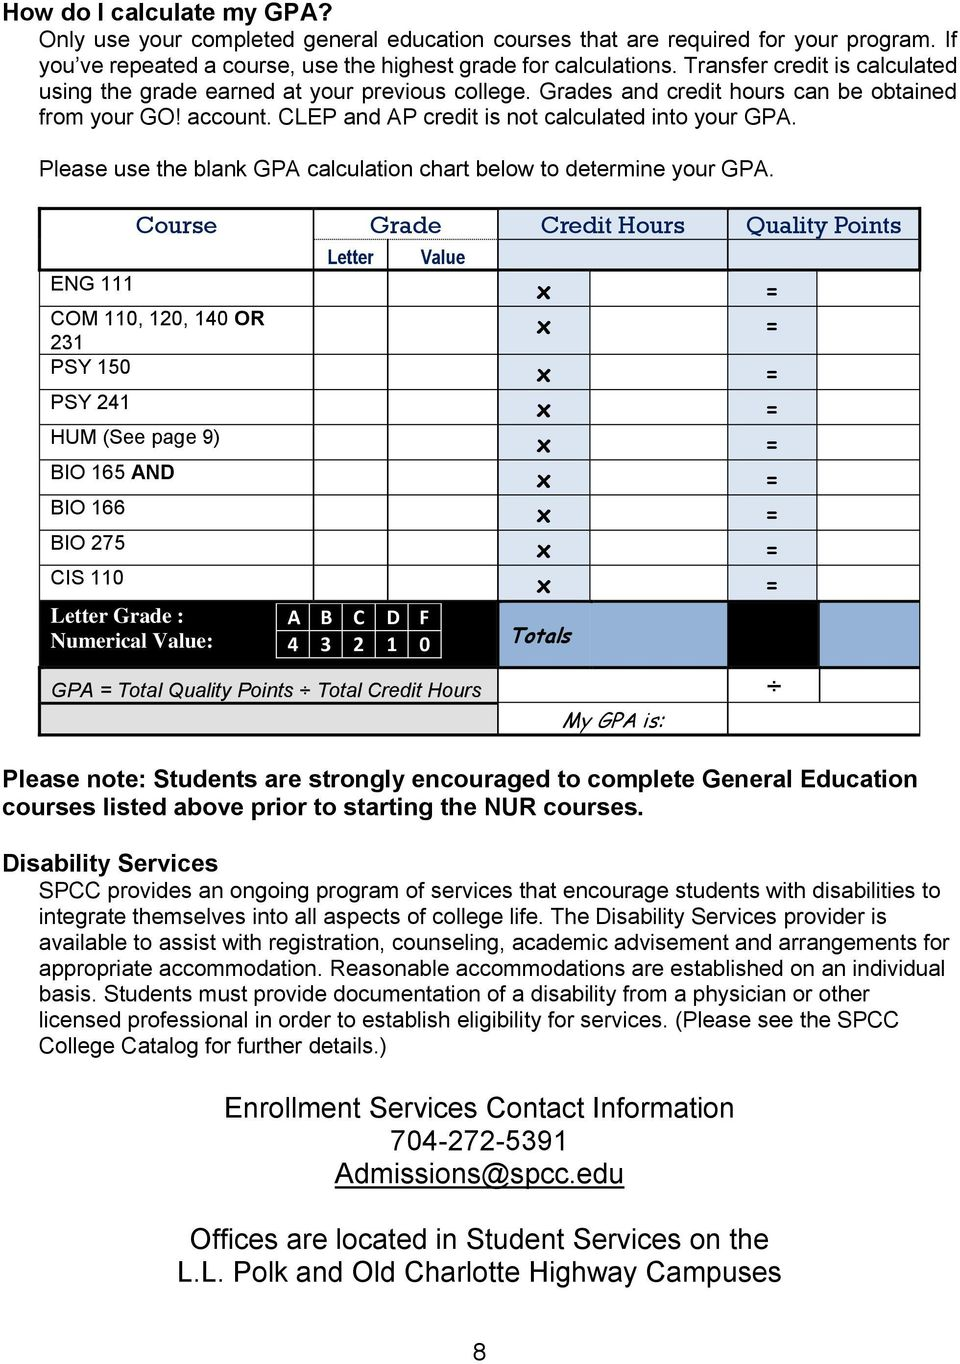 Please use the blank GPA calculation chart below to determine your GPA.